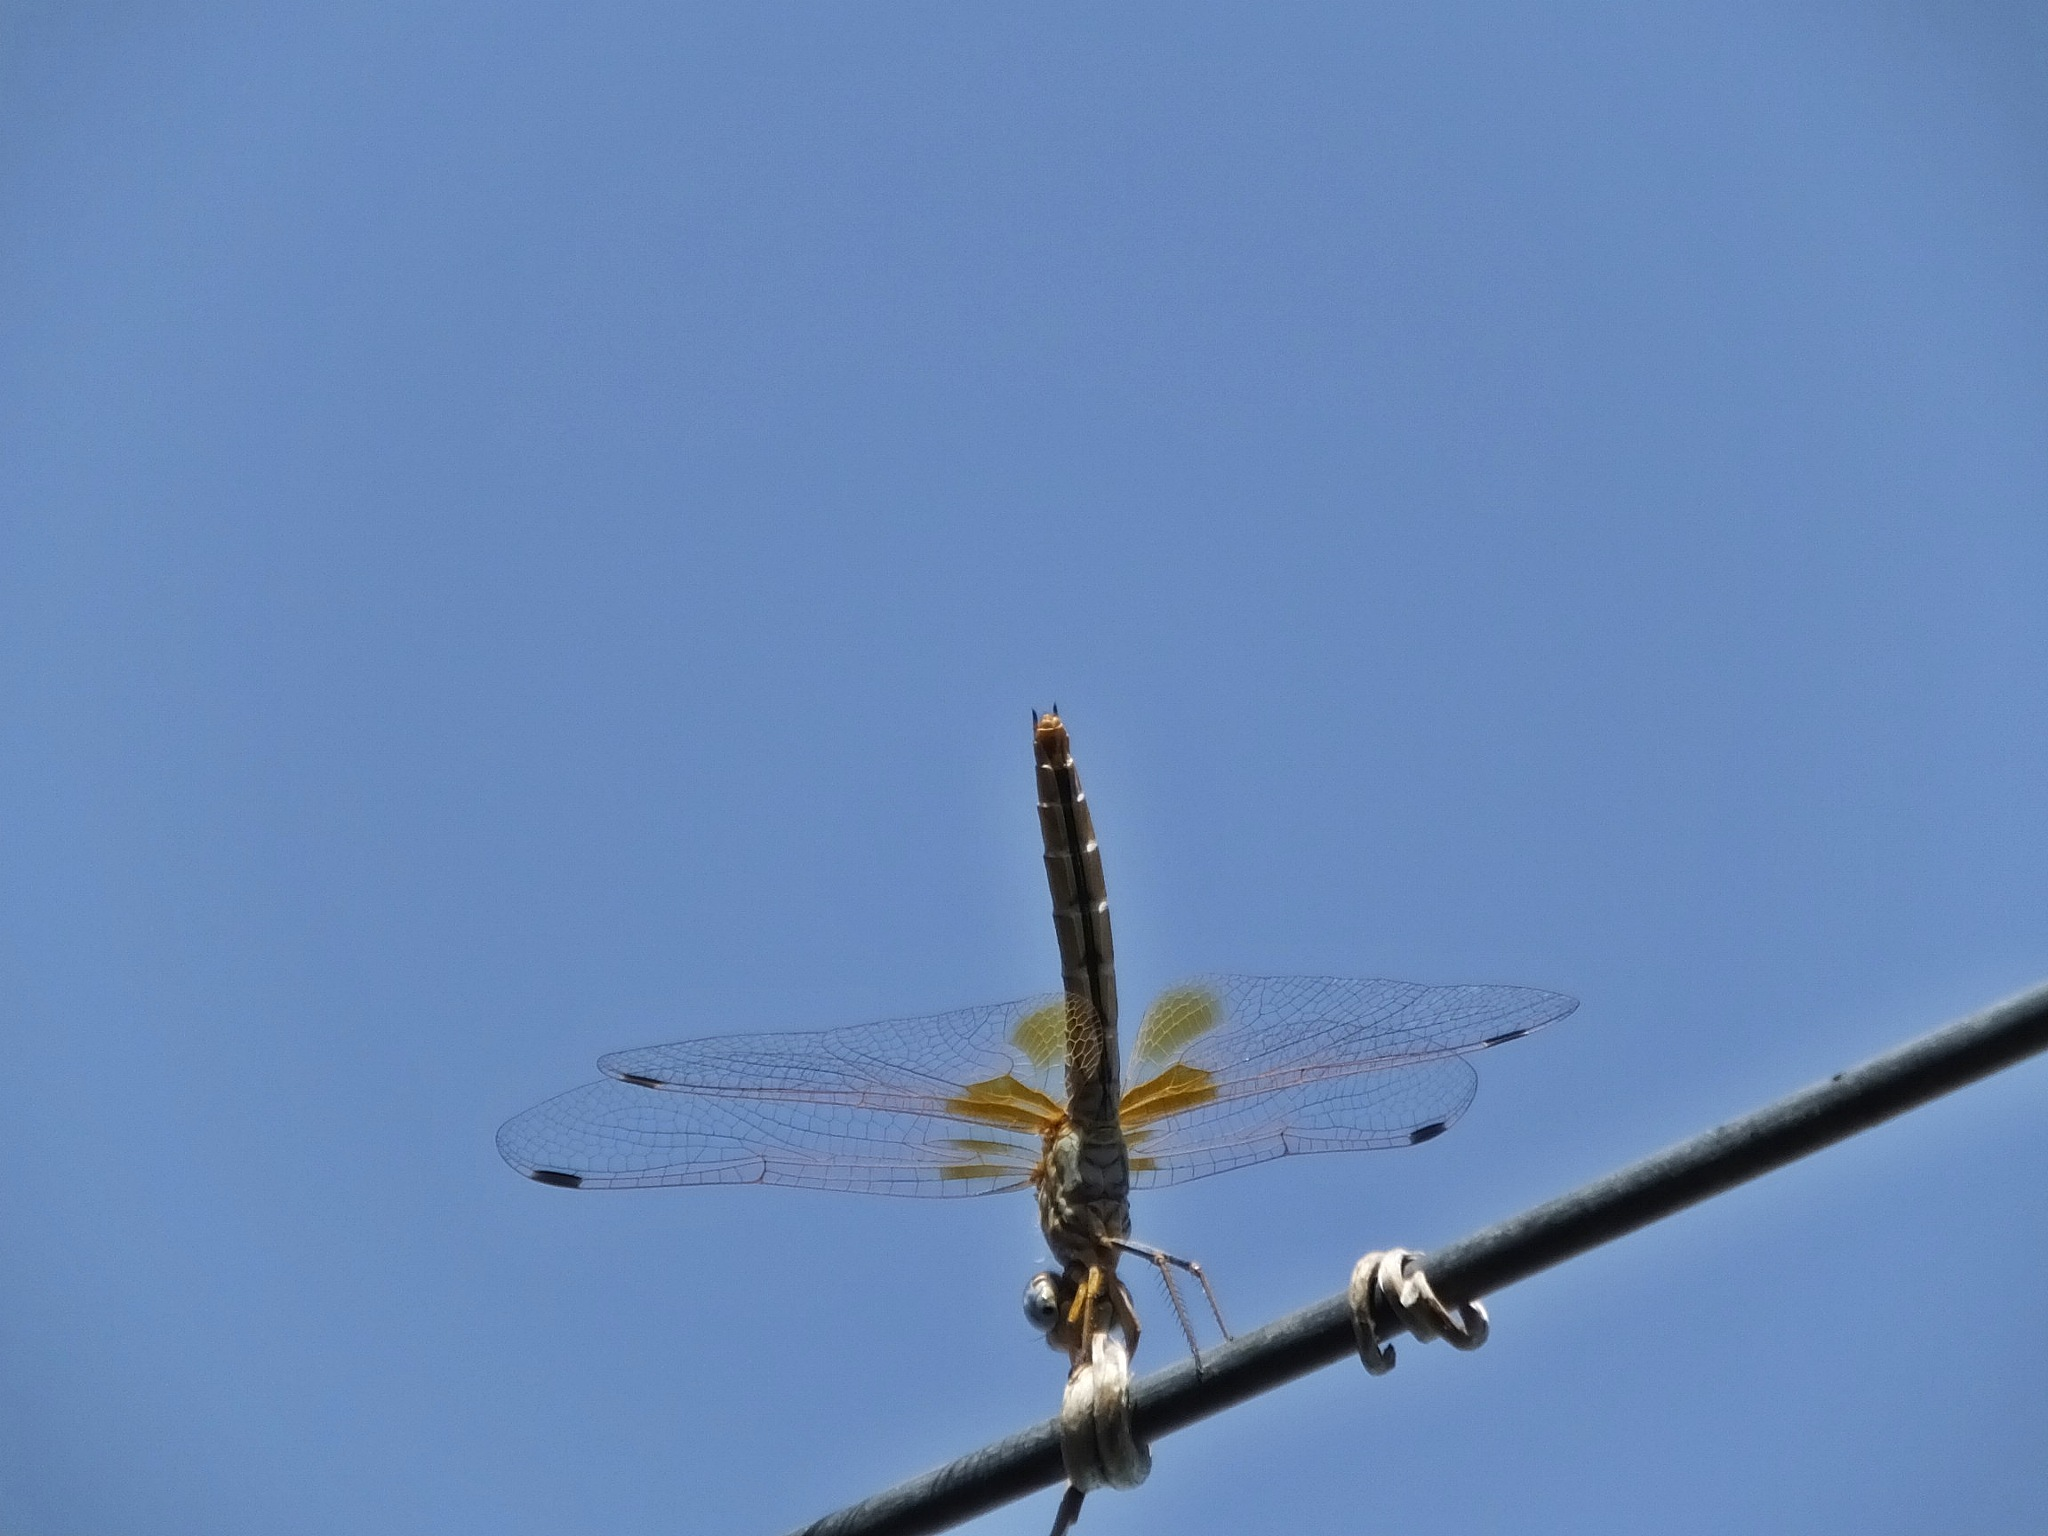 Dragonfly on the wire by Peter Rowland